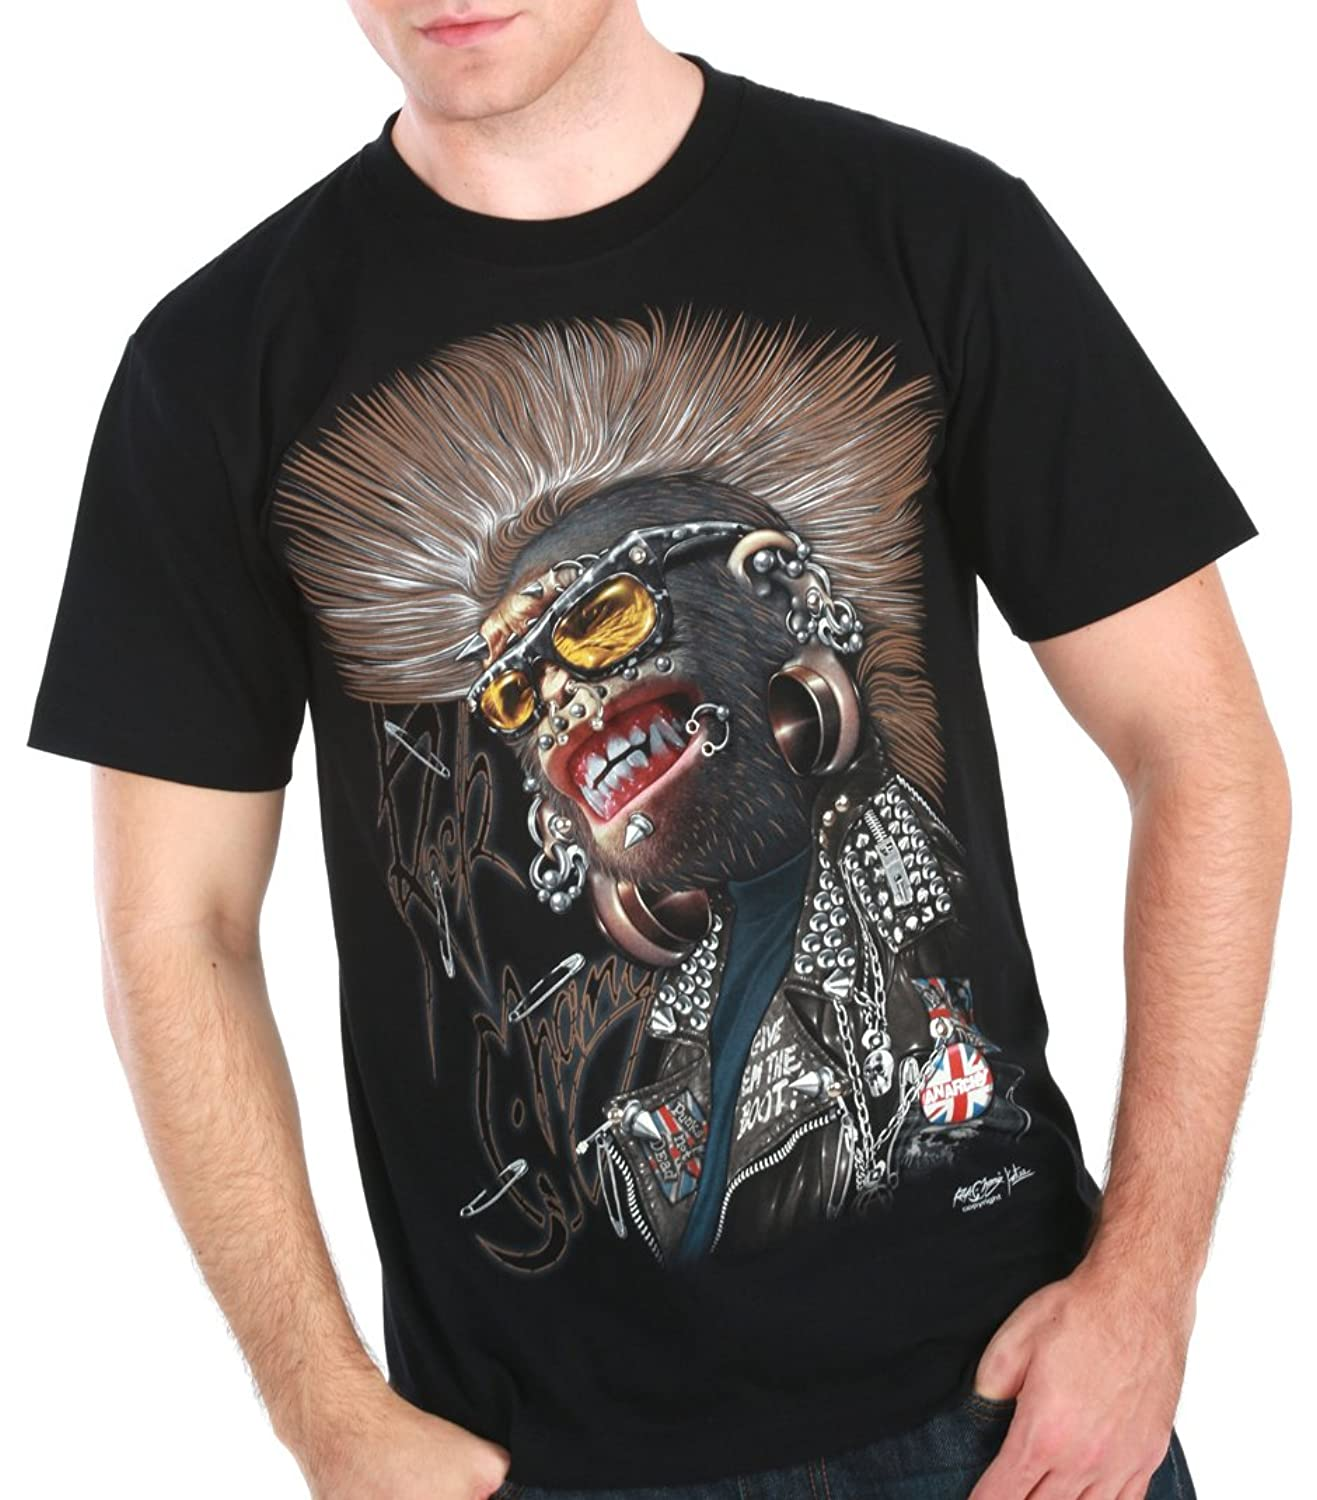 Monkey Punk T-Shirt 3D Motorcycle Hip Hop Tattoo Skateboarding Biker #T3